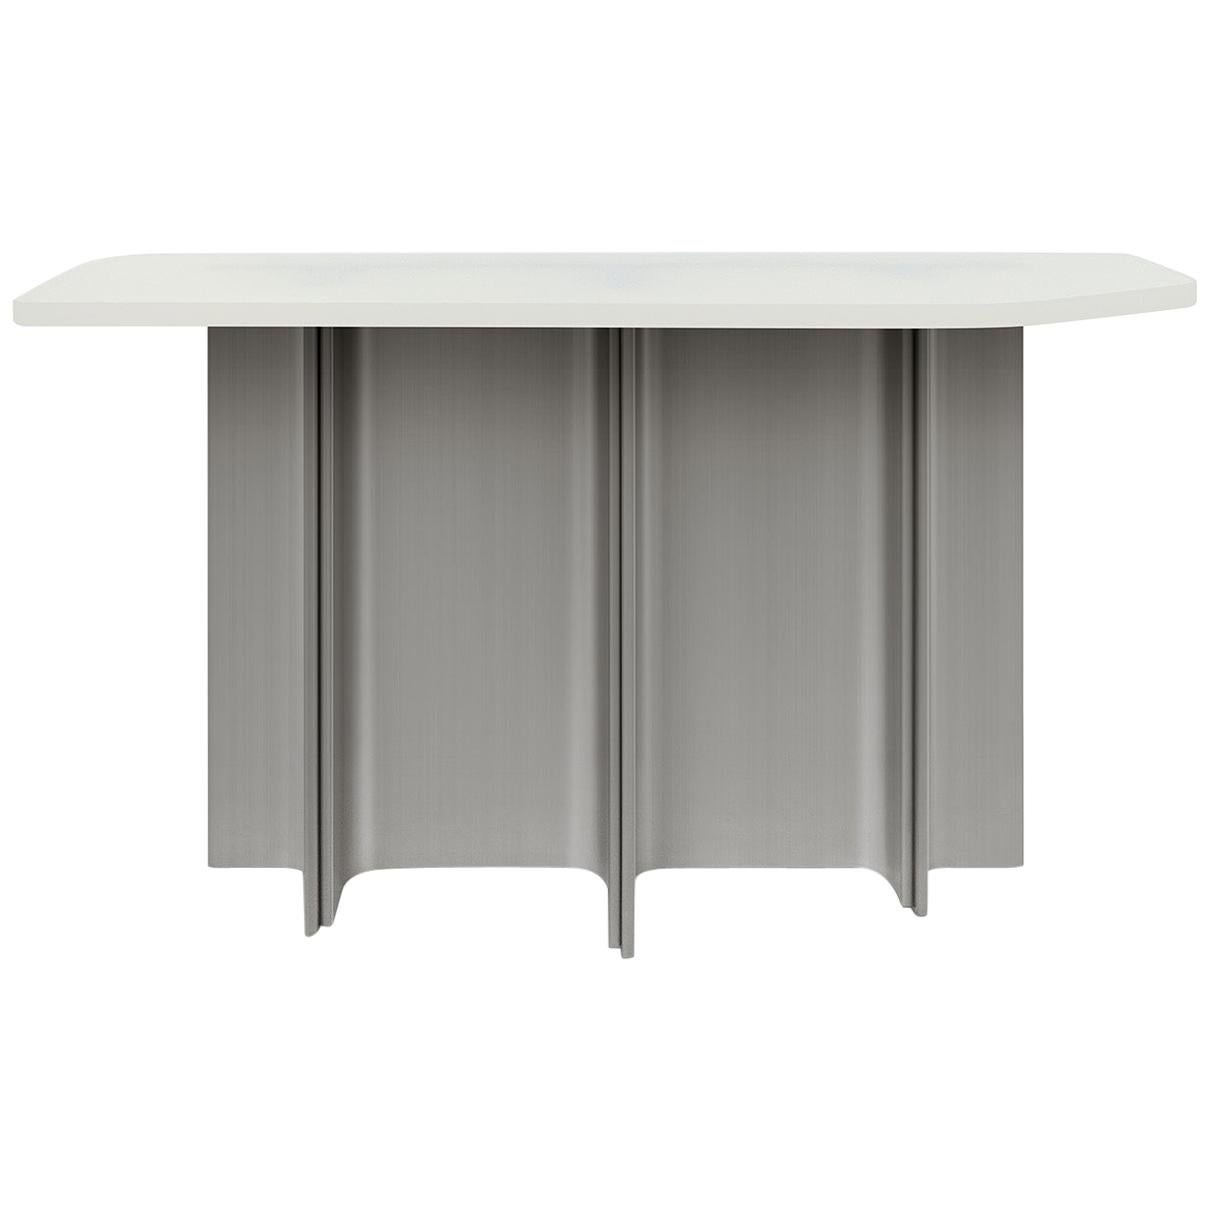 Console Table Fossil in Brushed Steel and Beige Opaque Resin